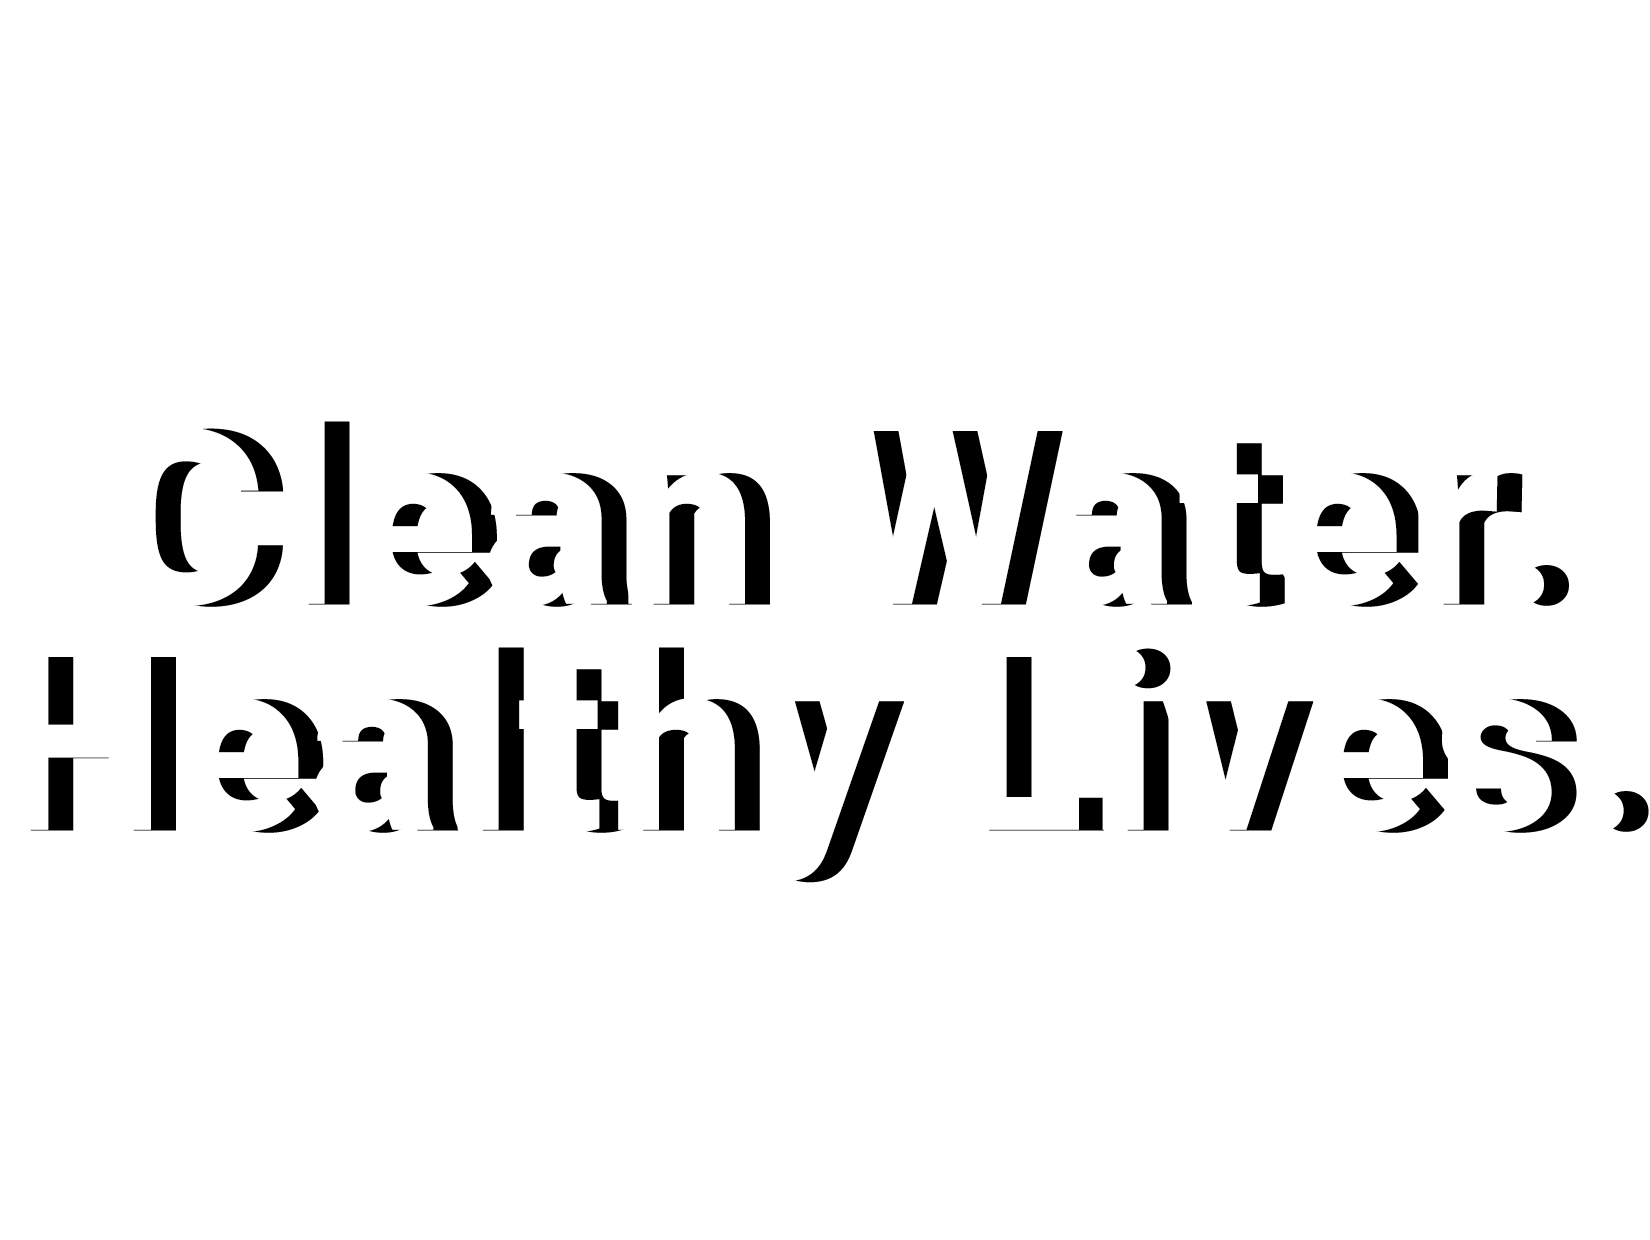 Clean Water. Healthy Lives